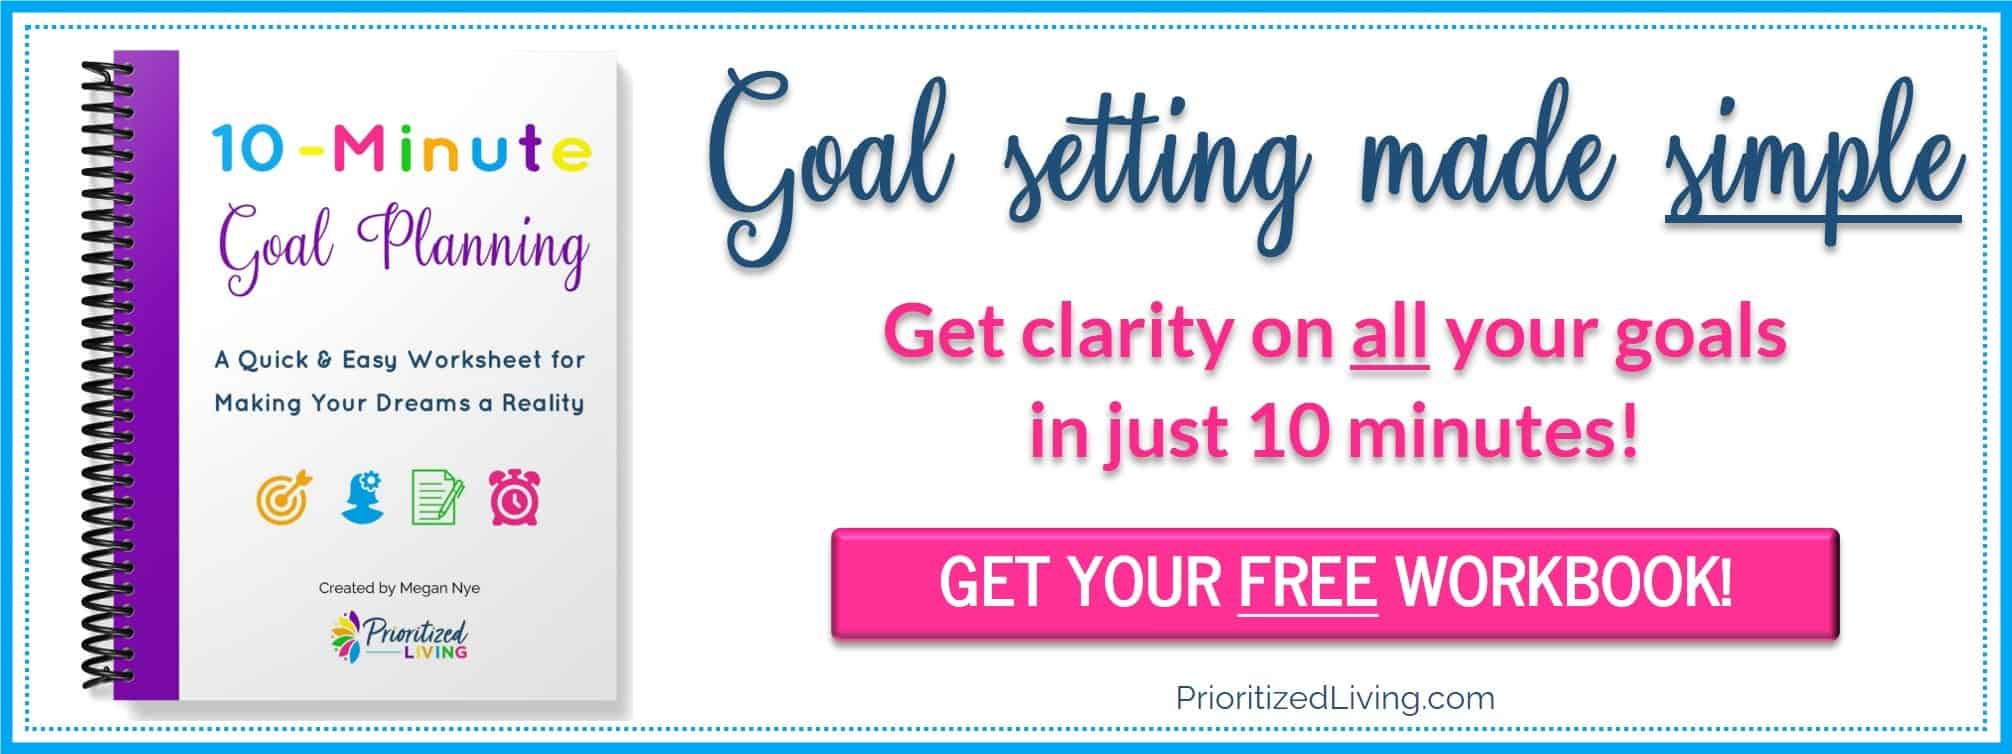 Get the 10-Minute Goal Planning free!